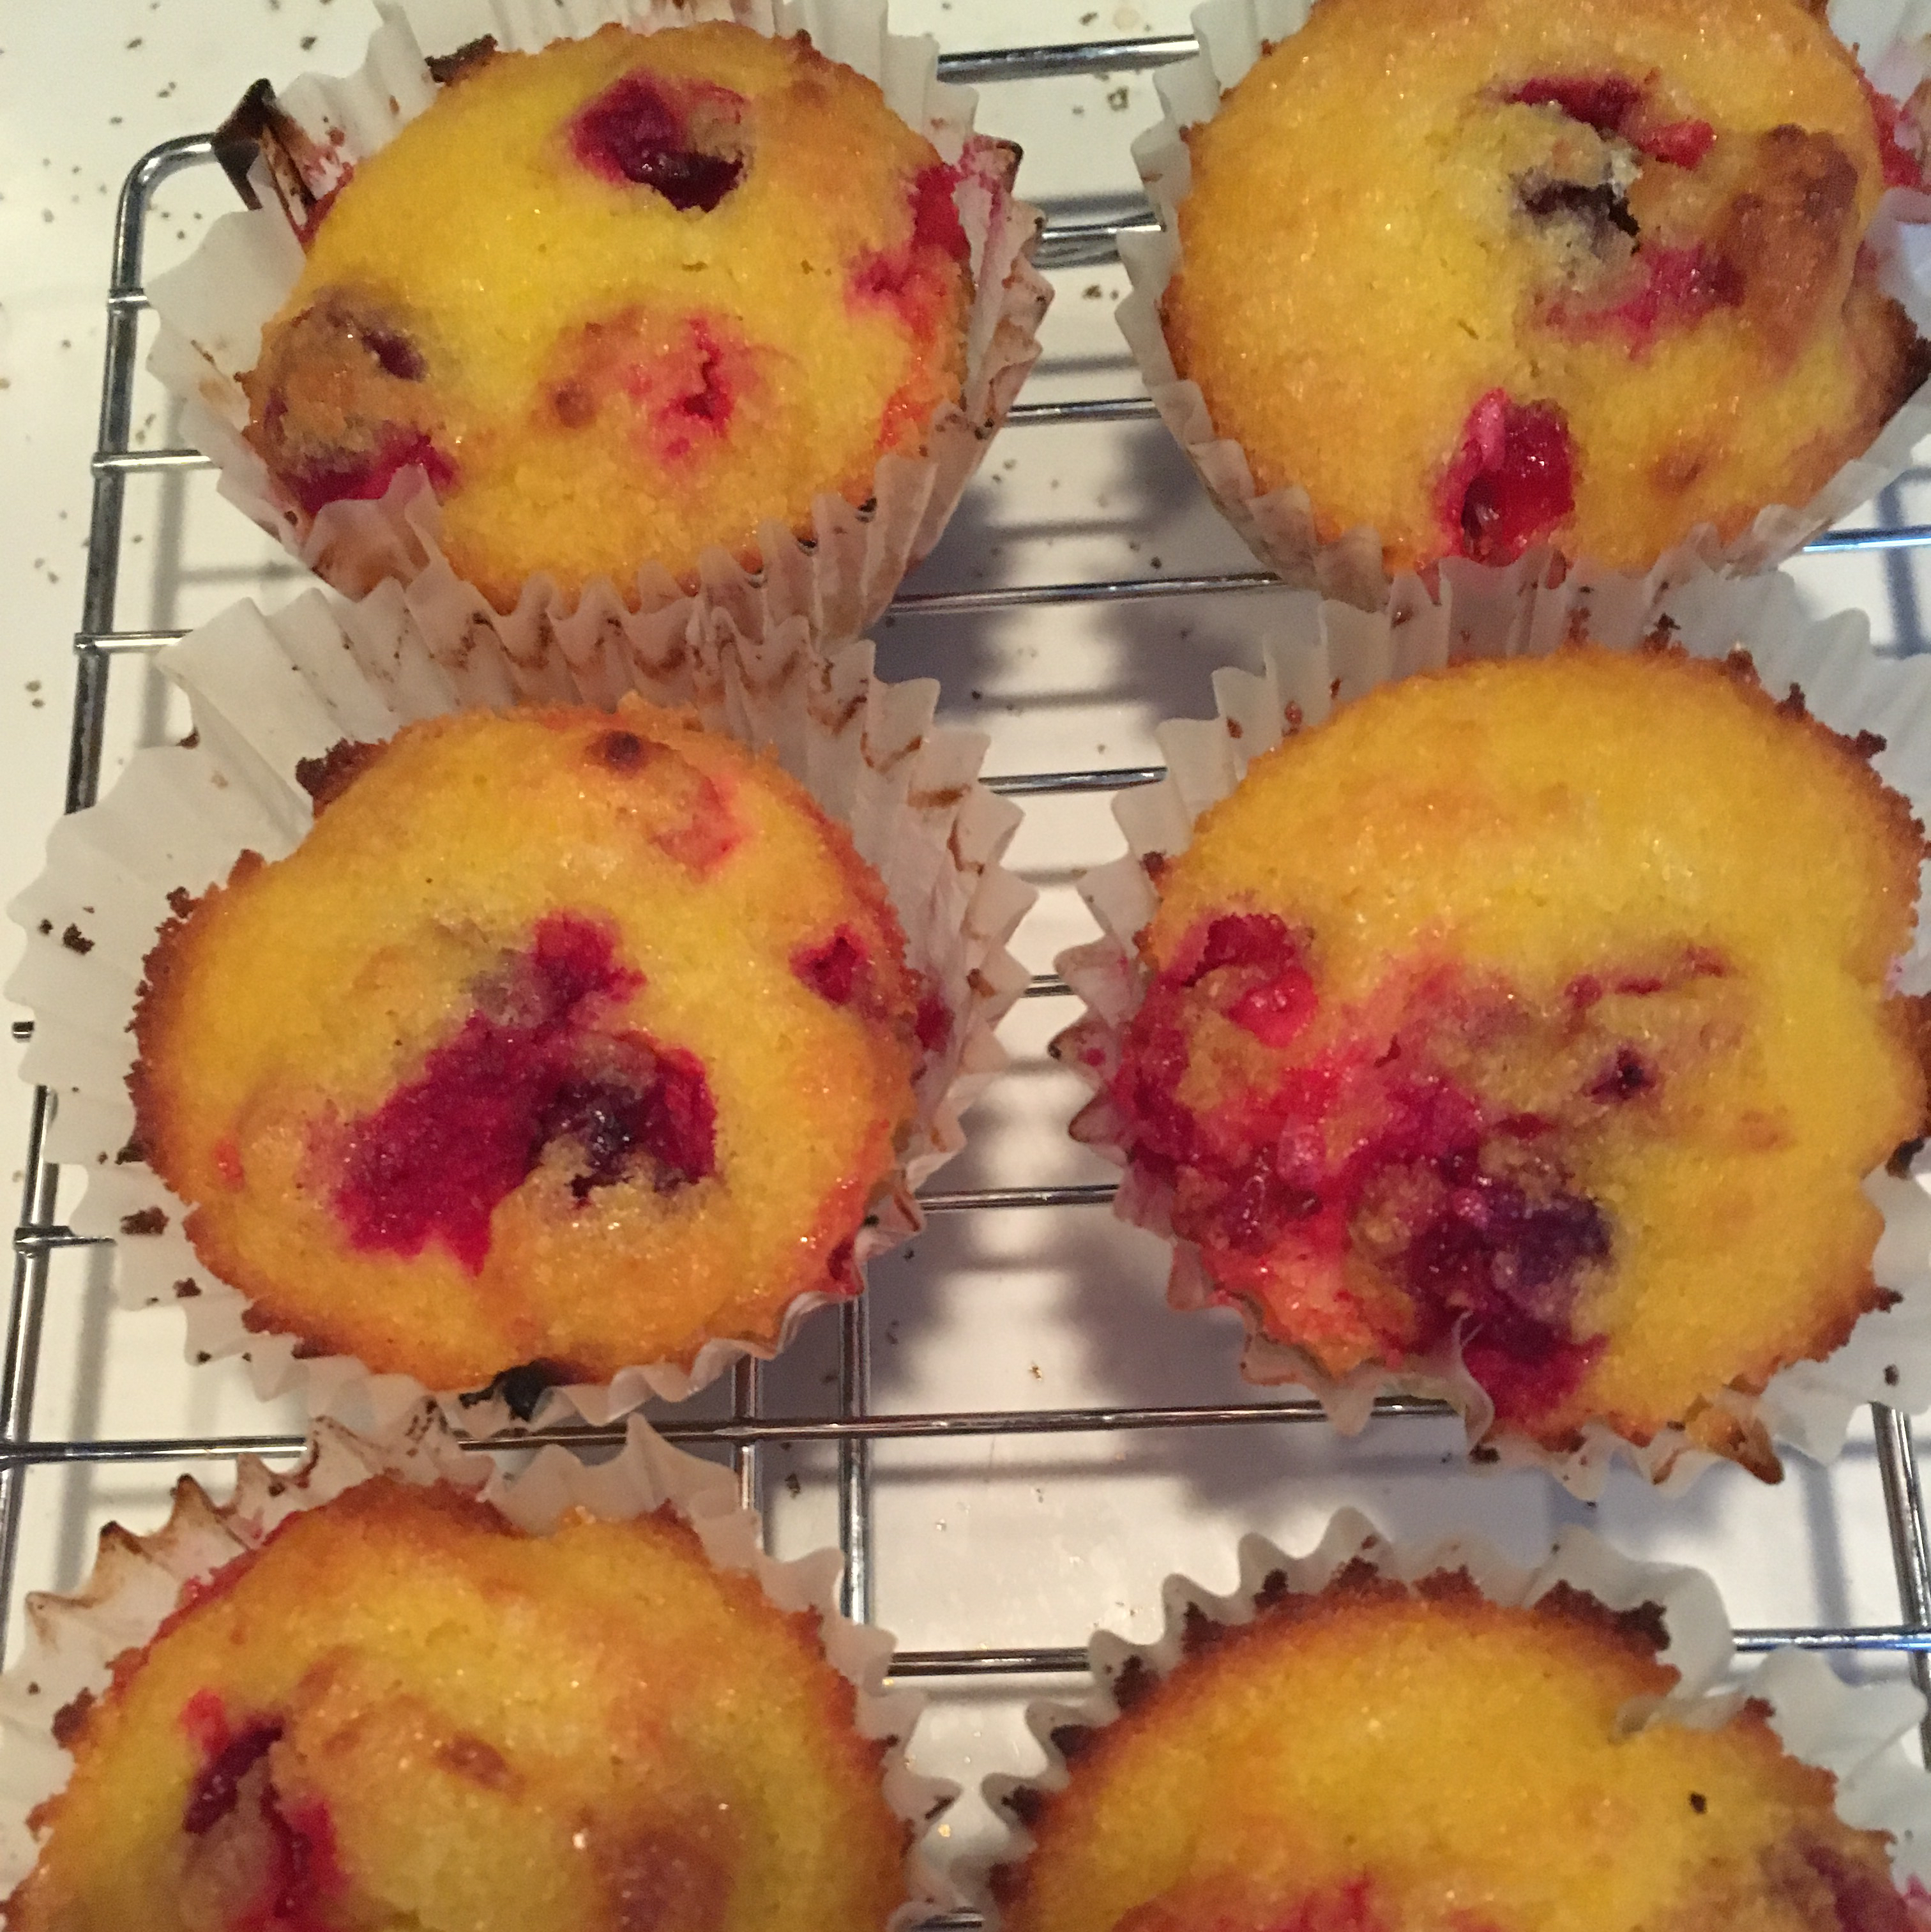 Gluten-Free Blueberry Muffins made with Coconut Flour Laura Tripp